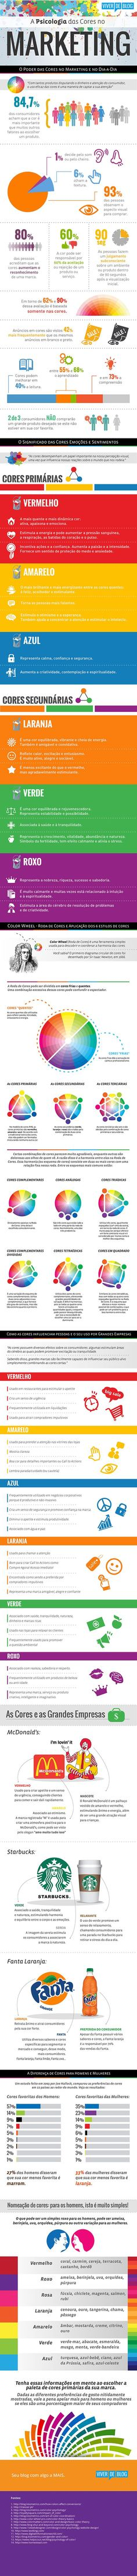 A psicologia das cores no marketing. @Henrique Carvalho